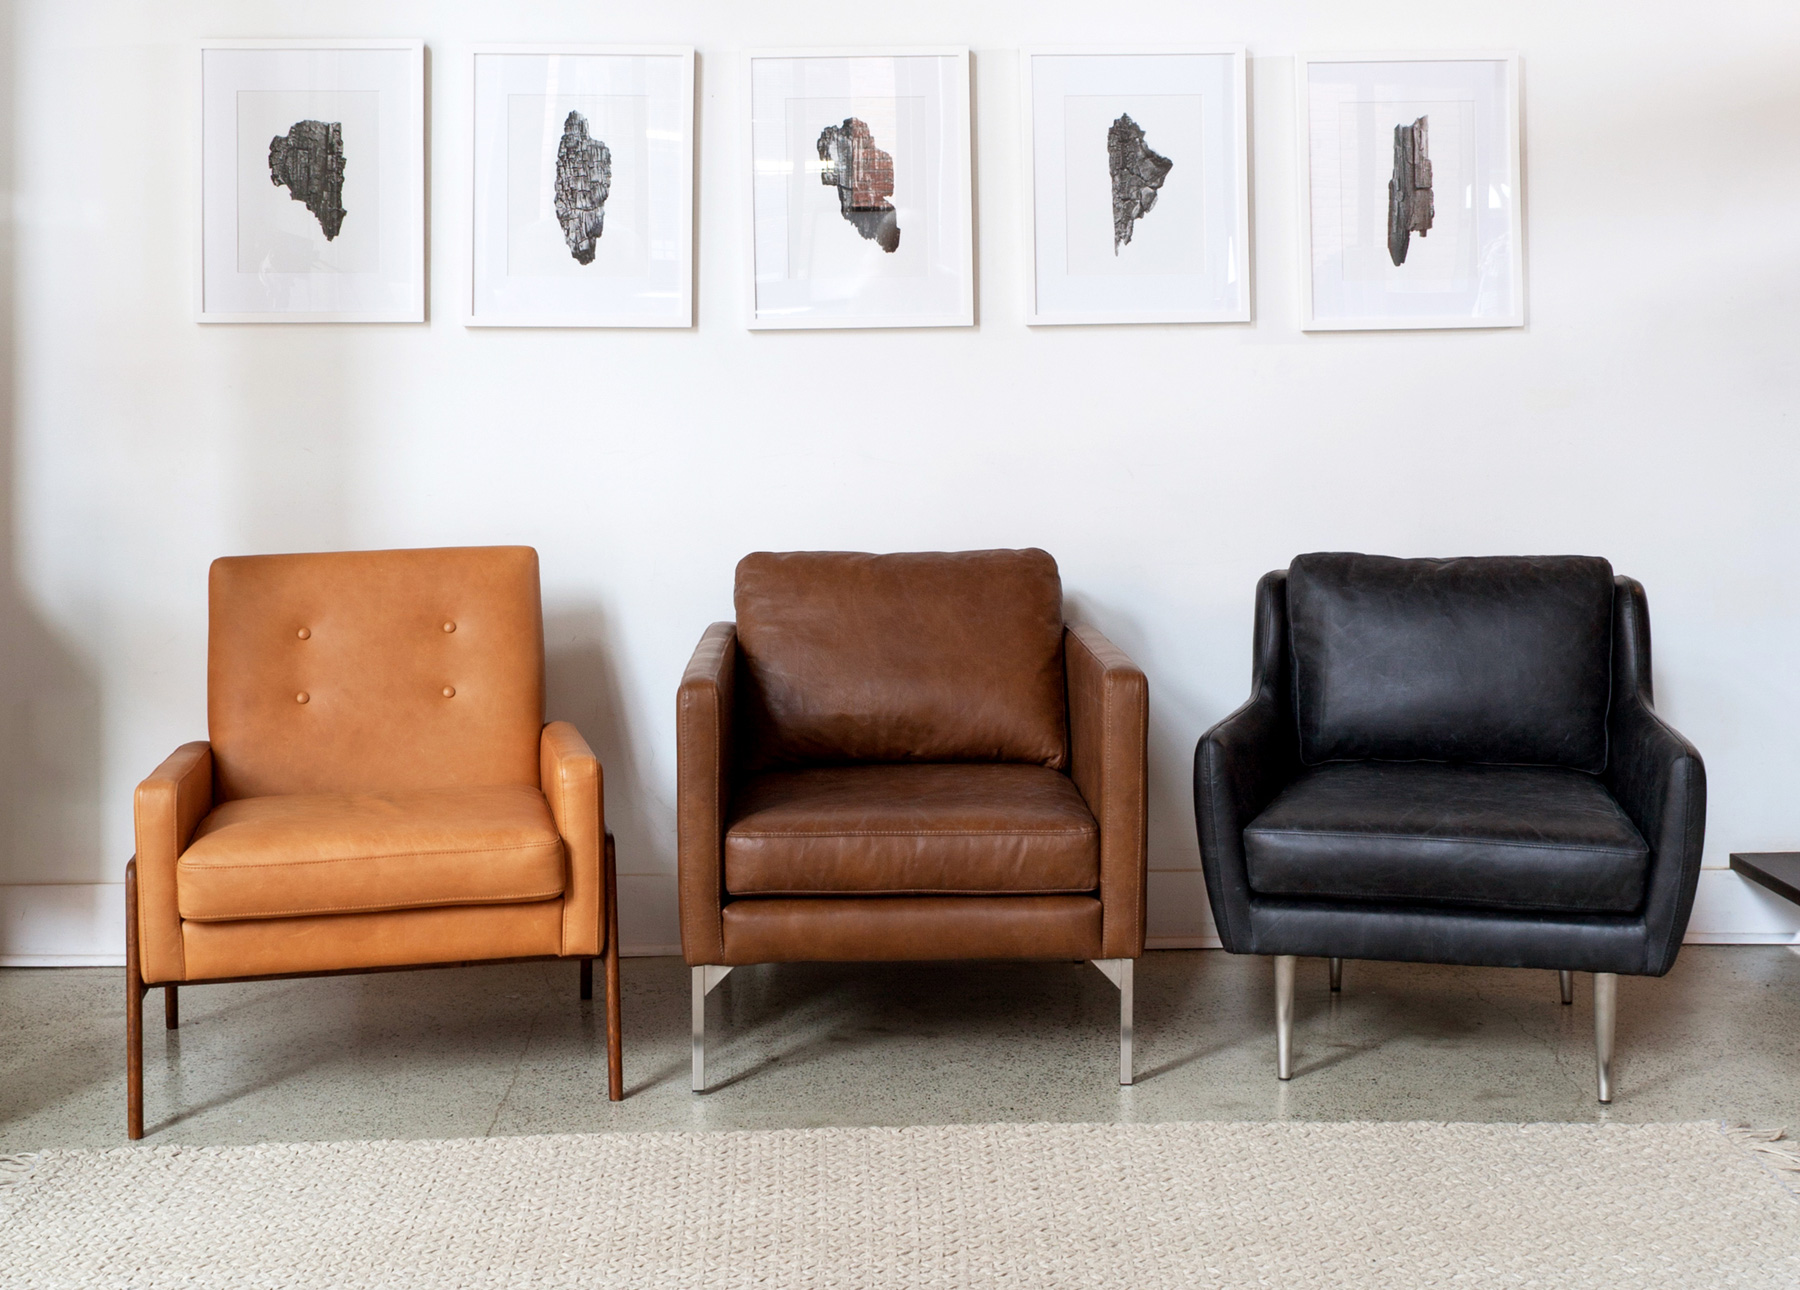 Nord Charme Tan Chair, Echo Oxford Tan Chair, Matrix Oxford Black Chair